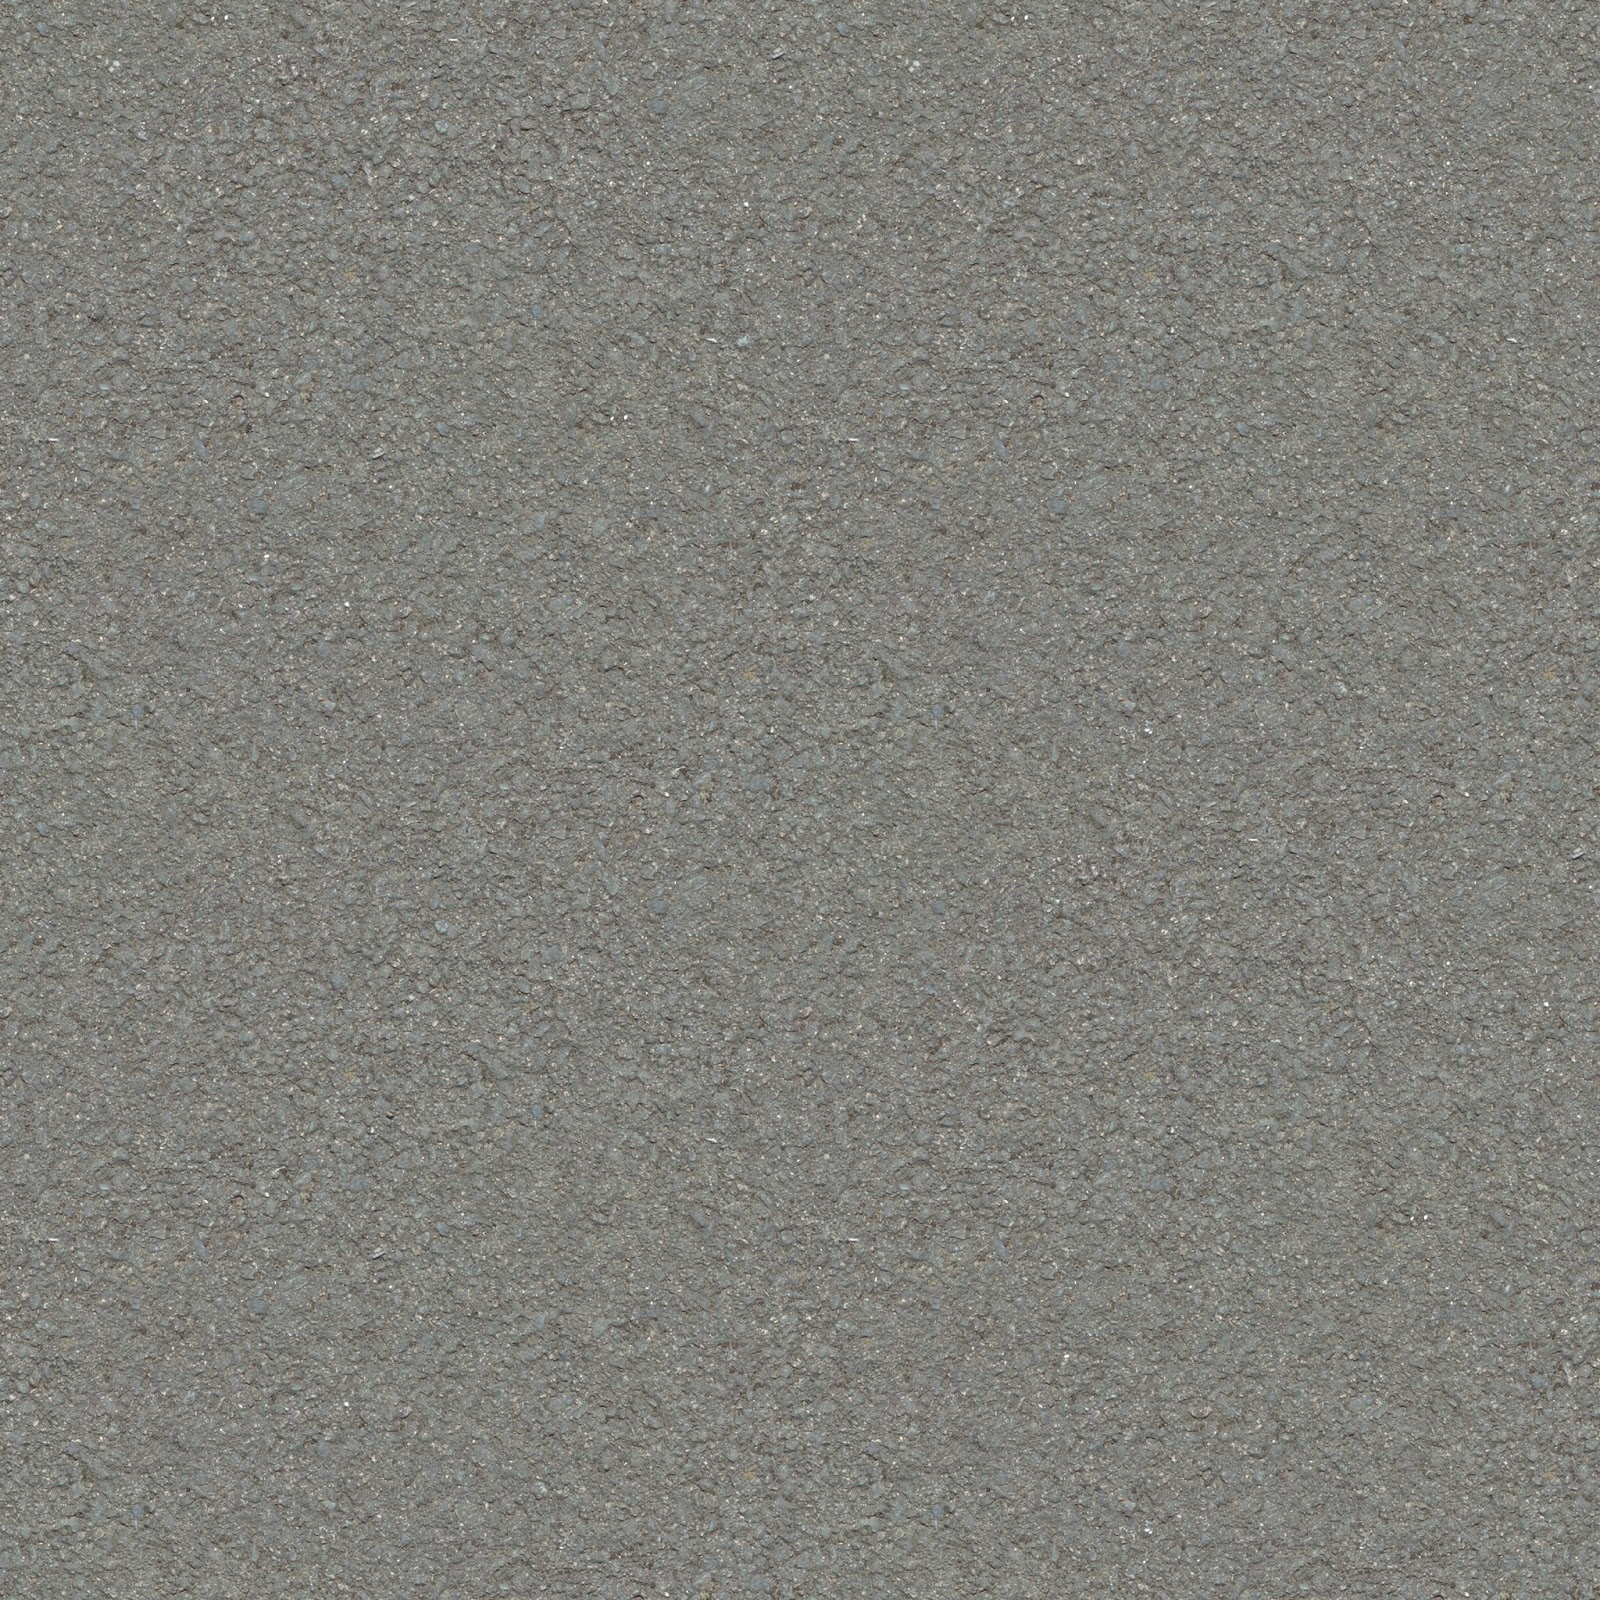 High Resolution Seamless Textures: Asphalt